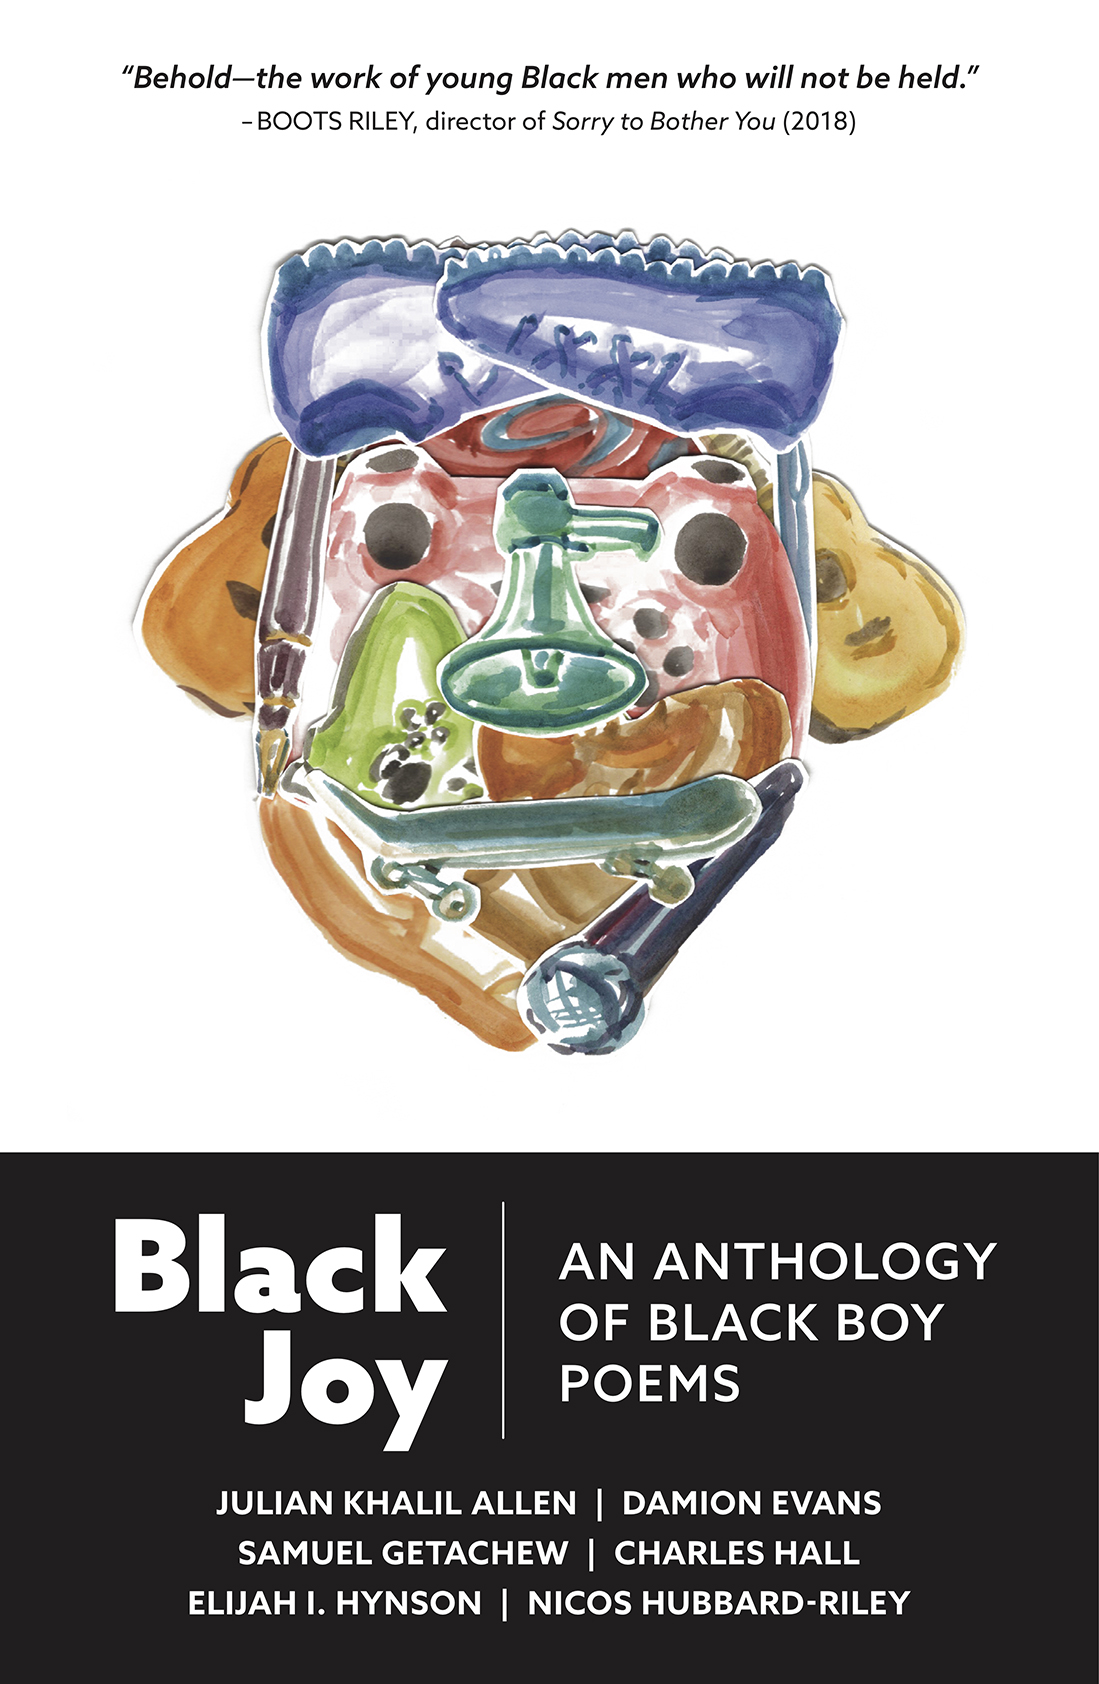 Black Joy: An Anthology of Black Boy Poems